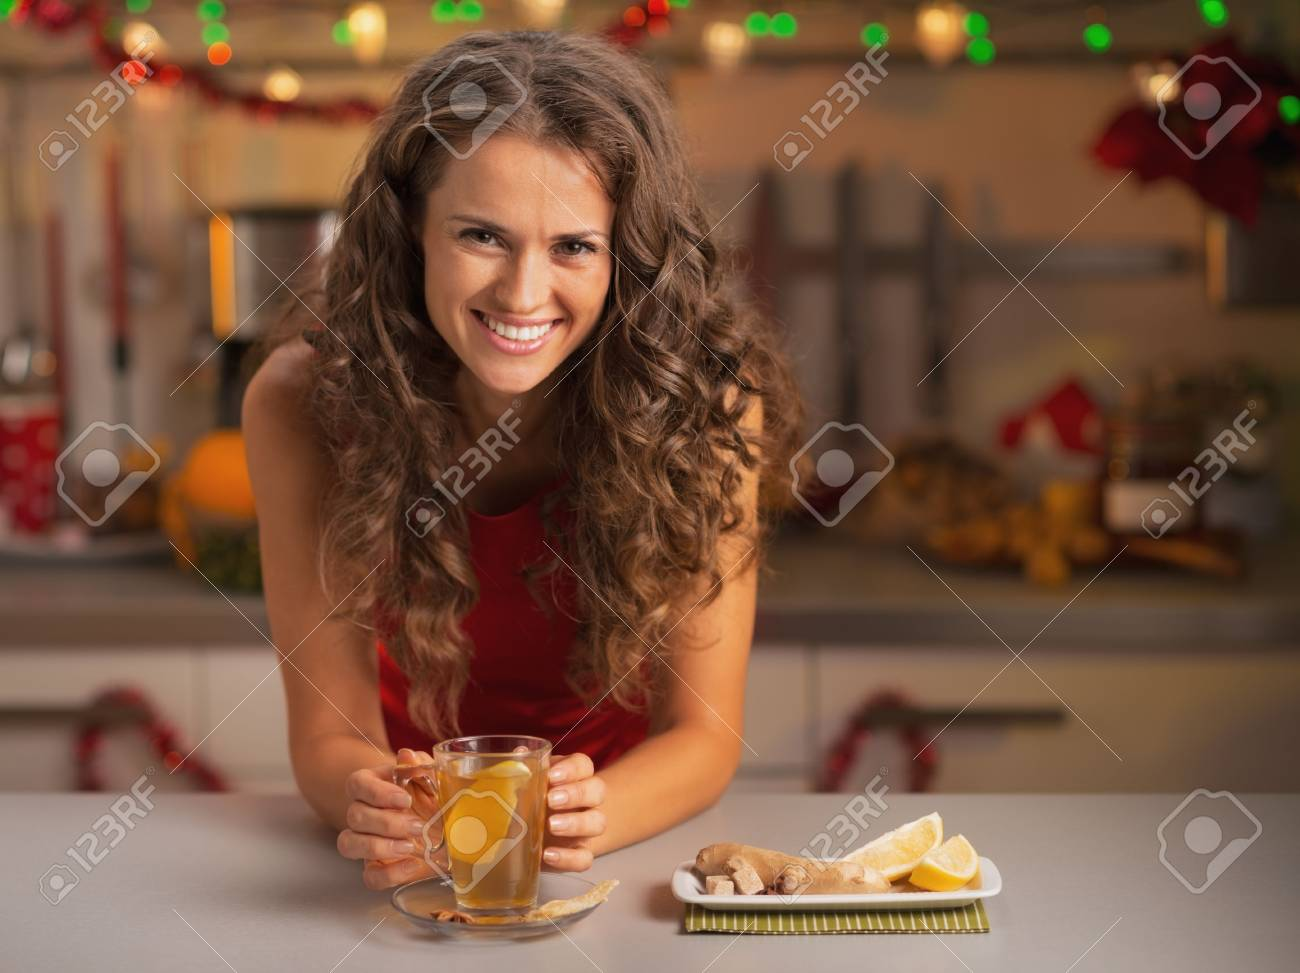 Smiling young woman drinking ginger tea in christmas decorated kitchen Stock Photo - 22887968